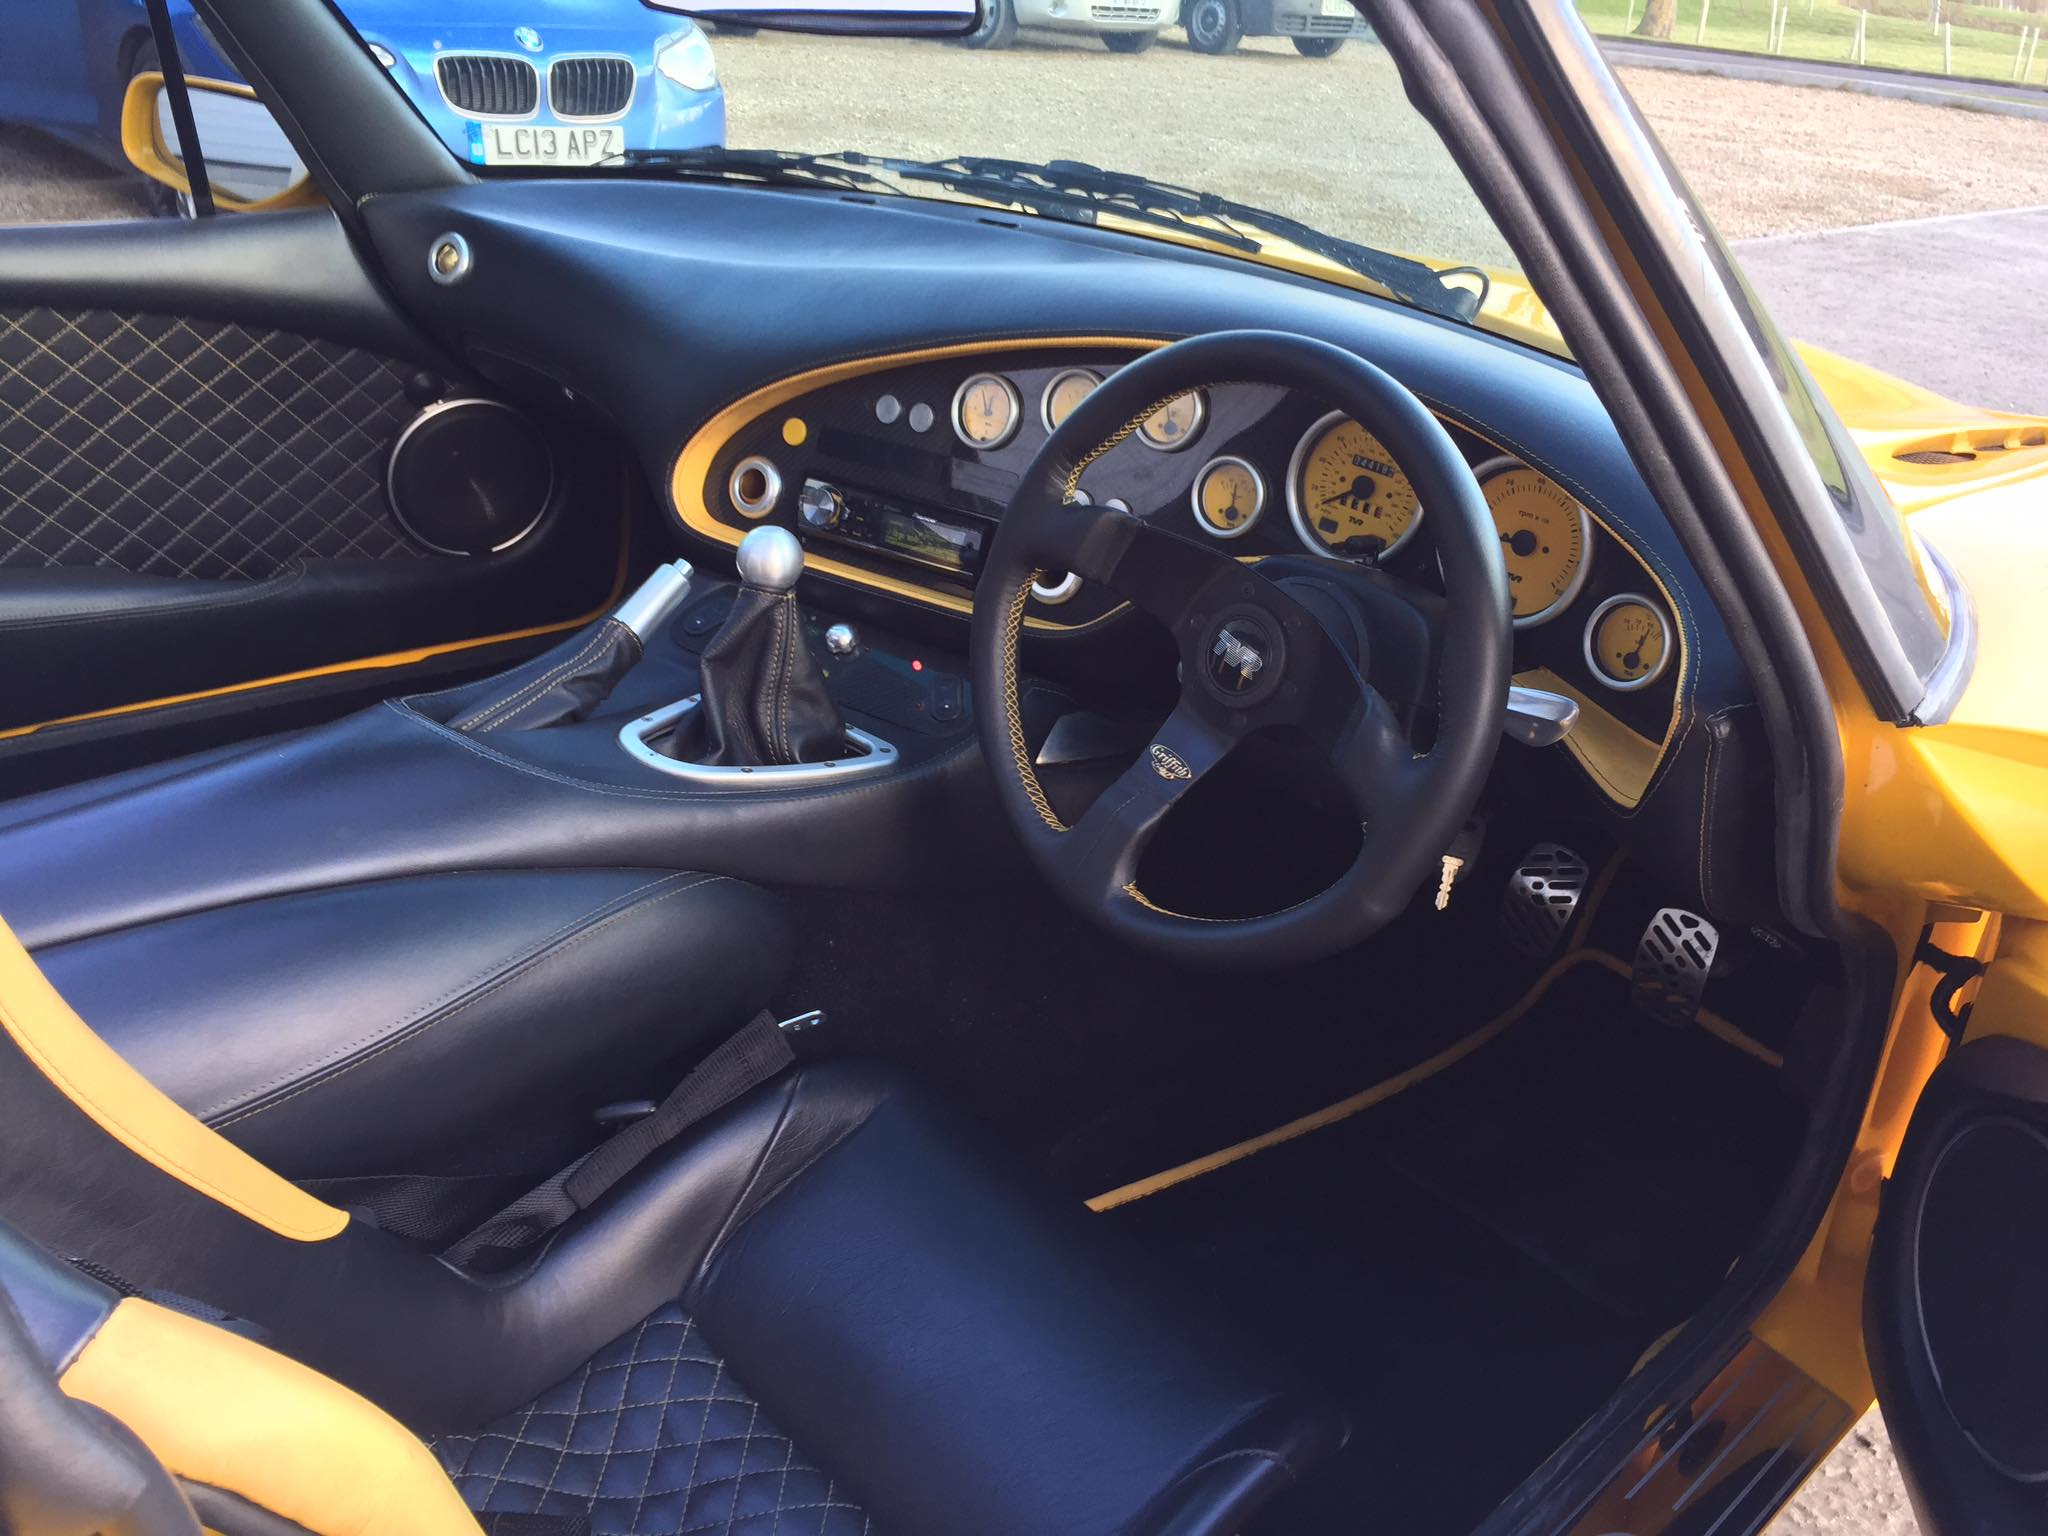 tvr griffith 500 ls3 6 2l v8 topcats racing conversion page 1 readers. Black Bedroom Furniture Sets. Home Design Ideas